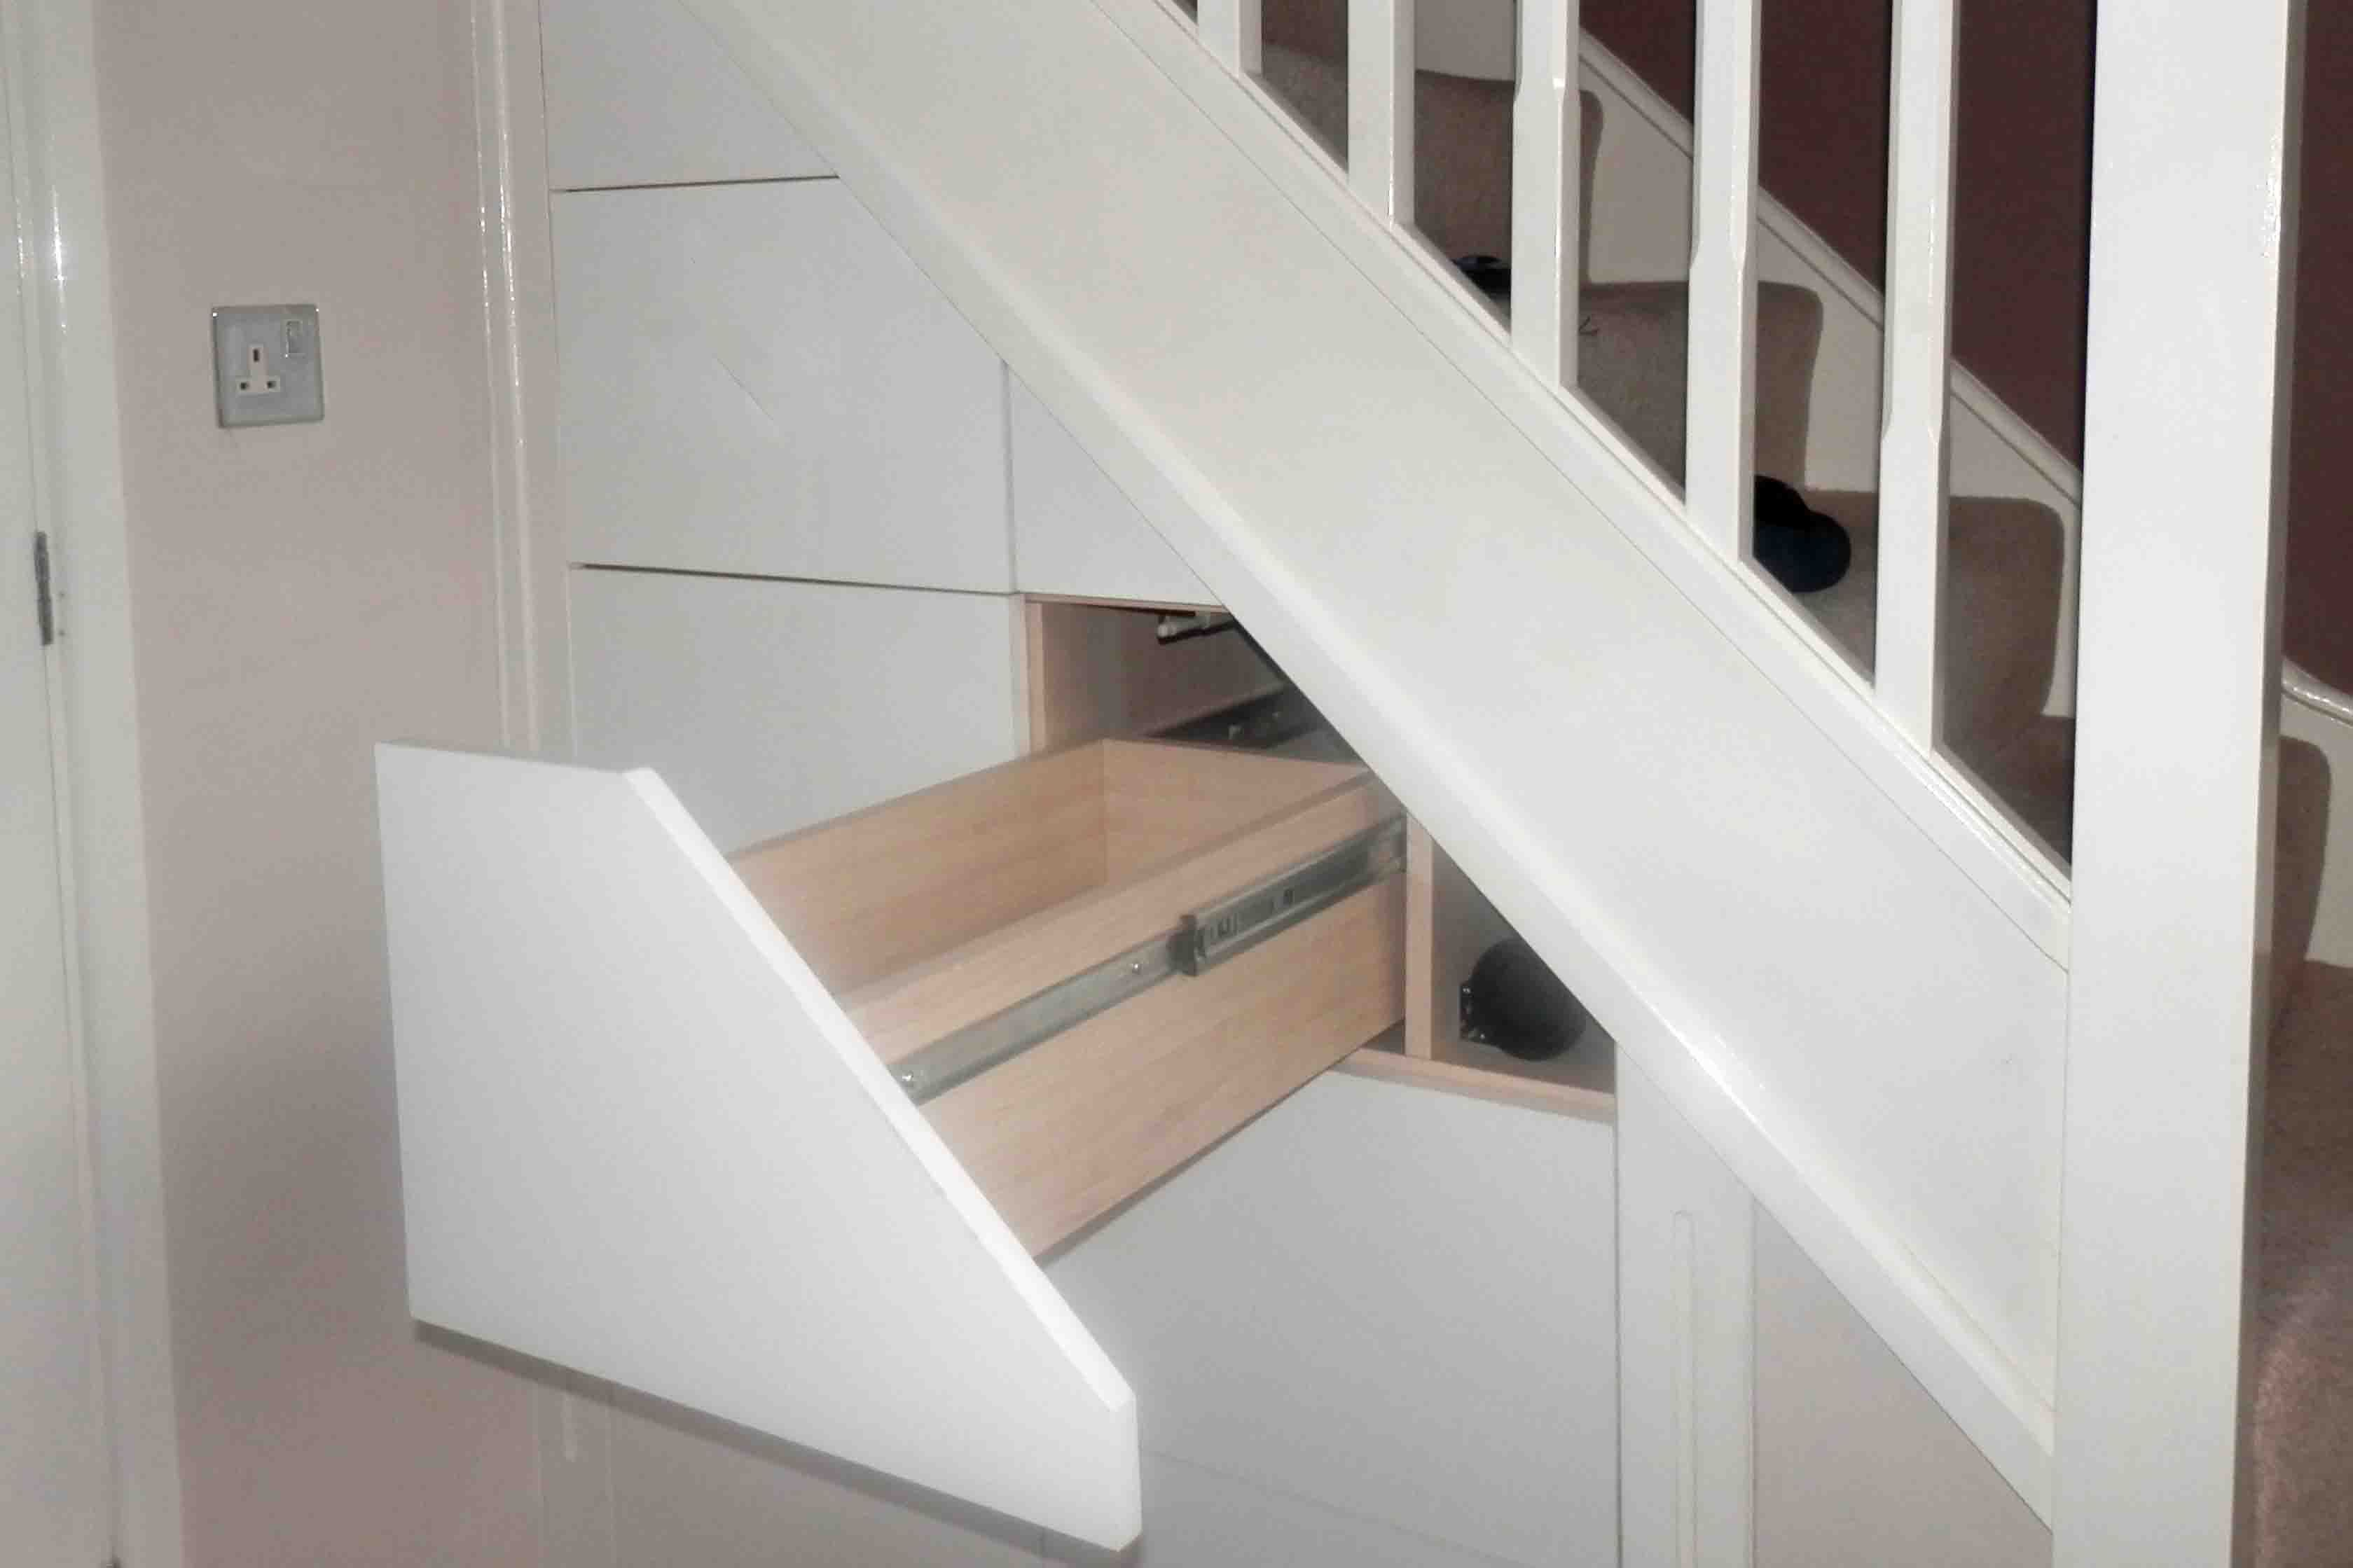 Under the stairs drawers